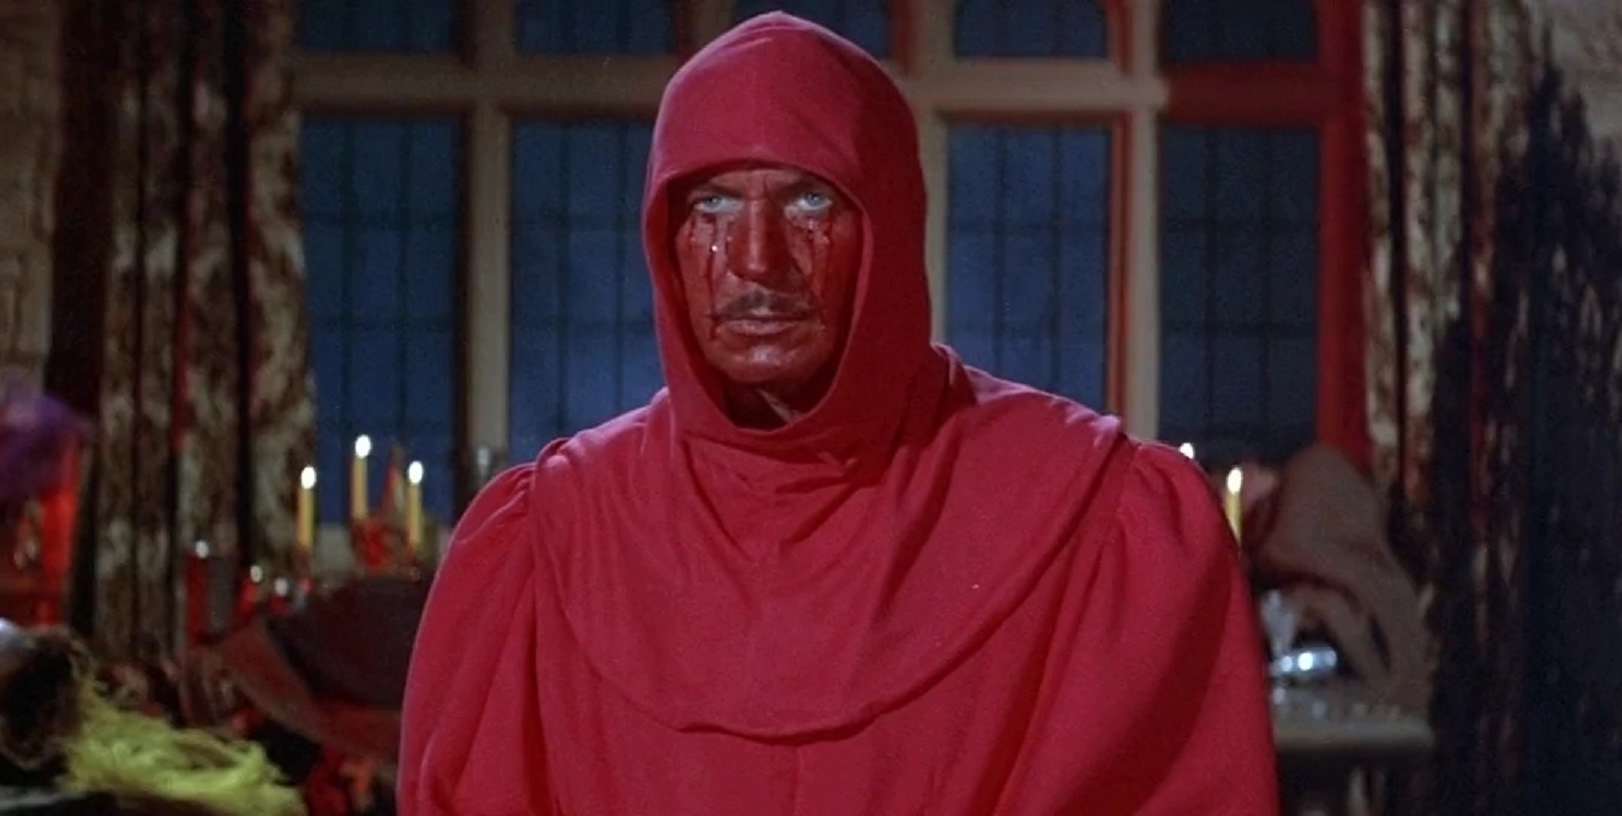 The Masque of the Red Death: sinistro